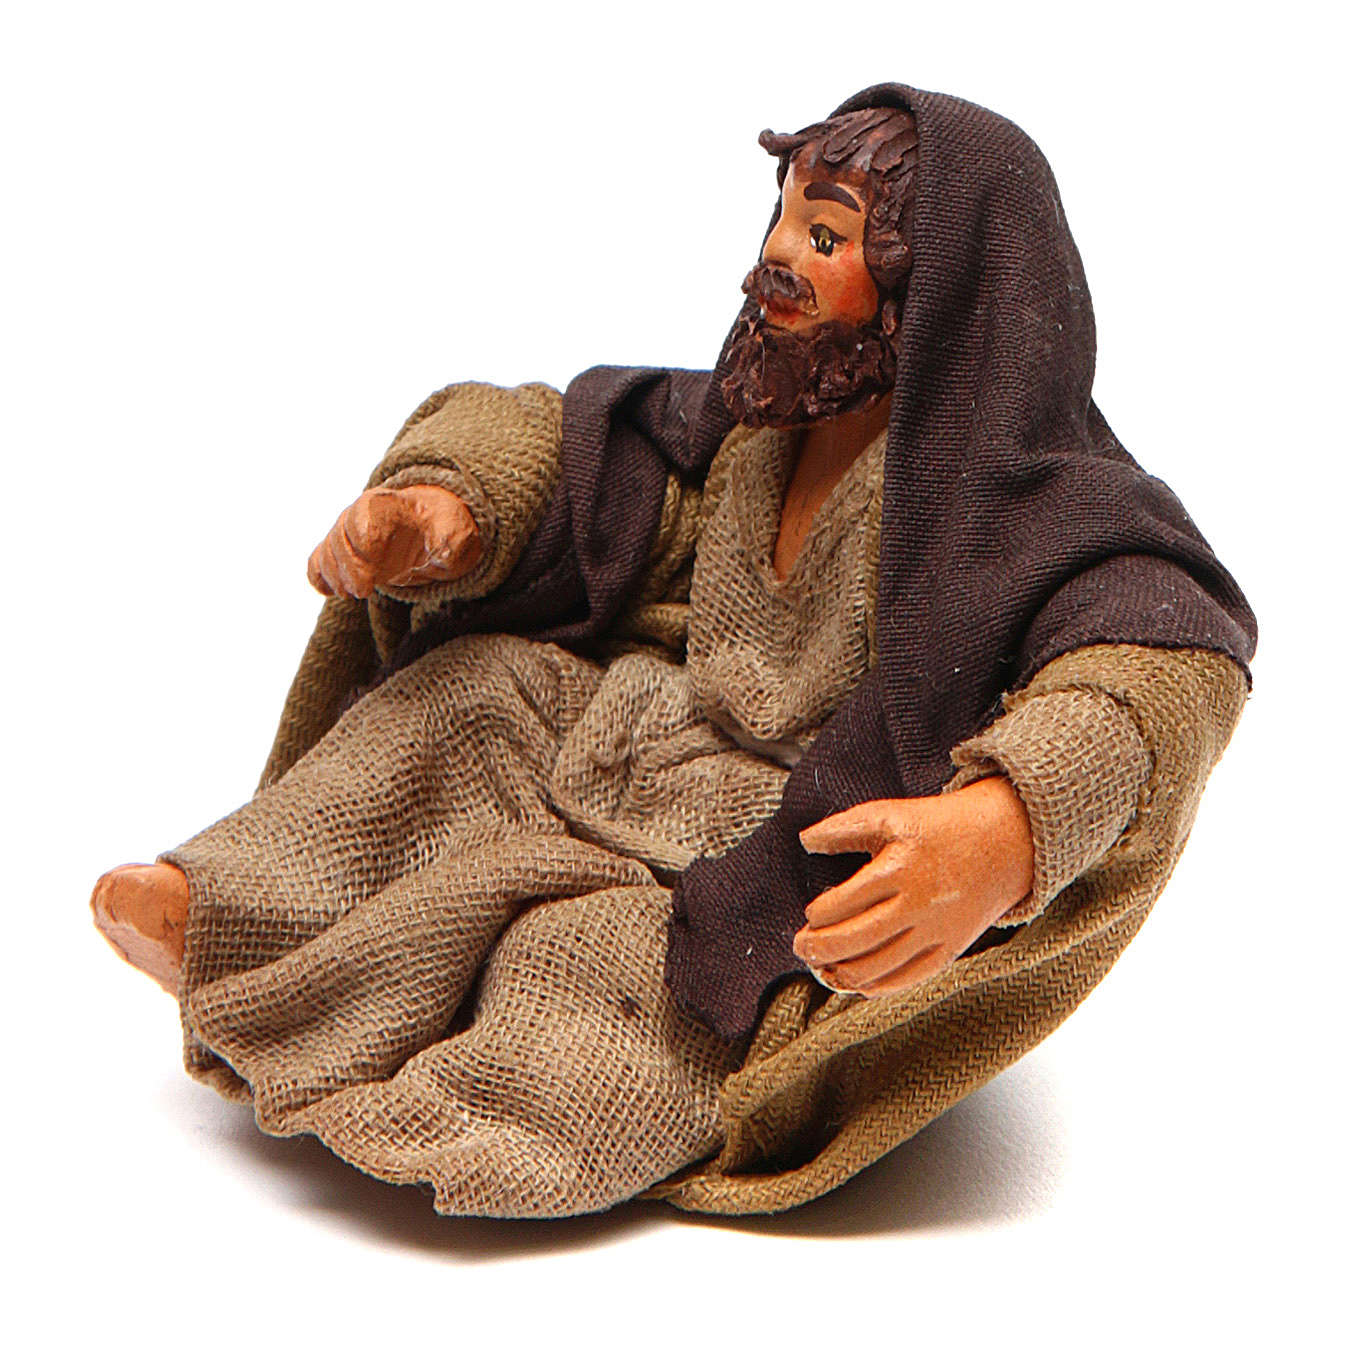 Sitting Saint Joseph 10cm, Nativity figurine 4